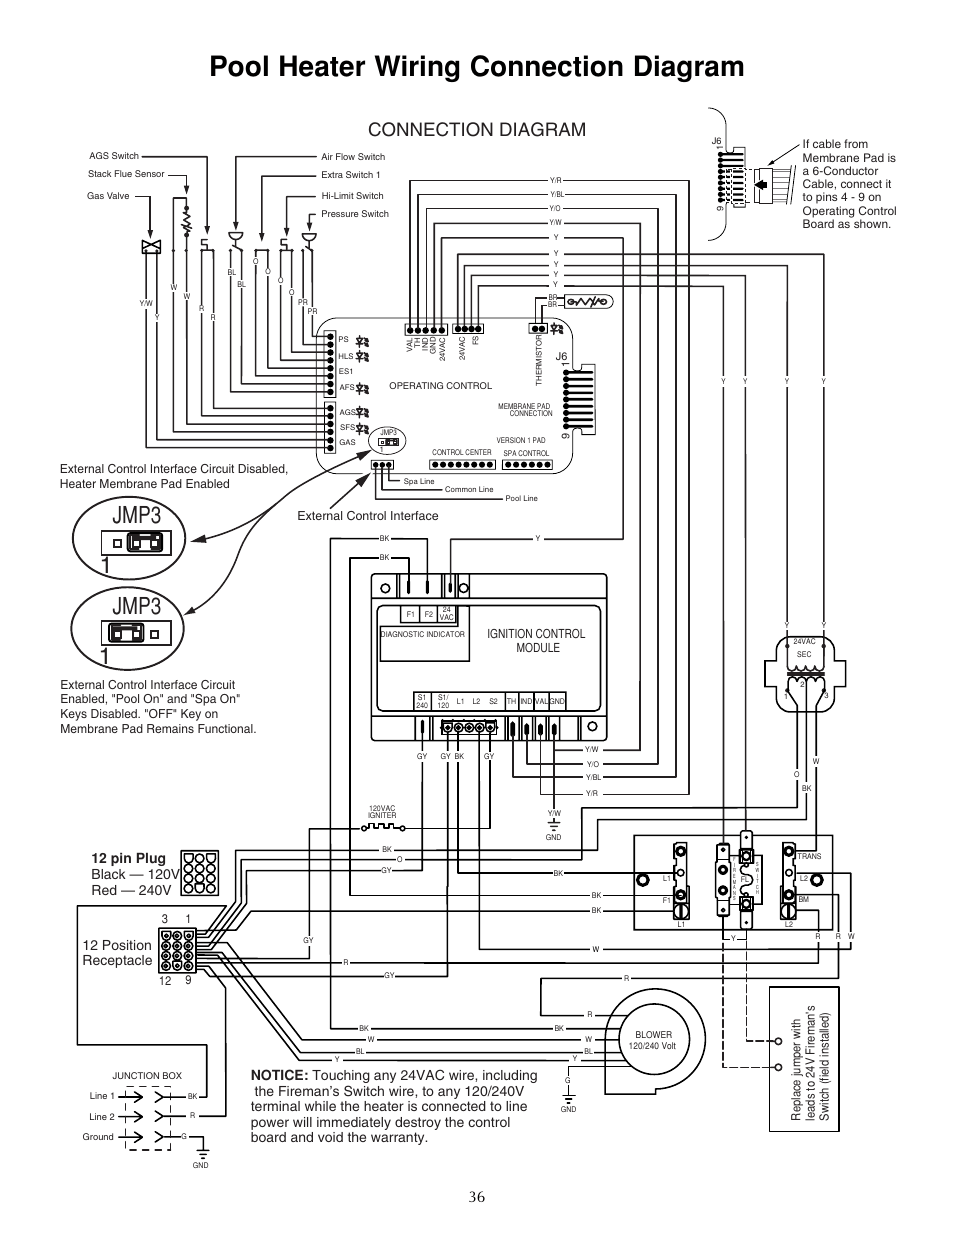 medium resolution of pool heater wiring schematics wiring diagram detailspool schematic wiring 17